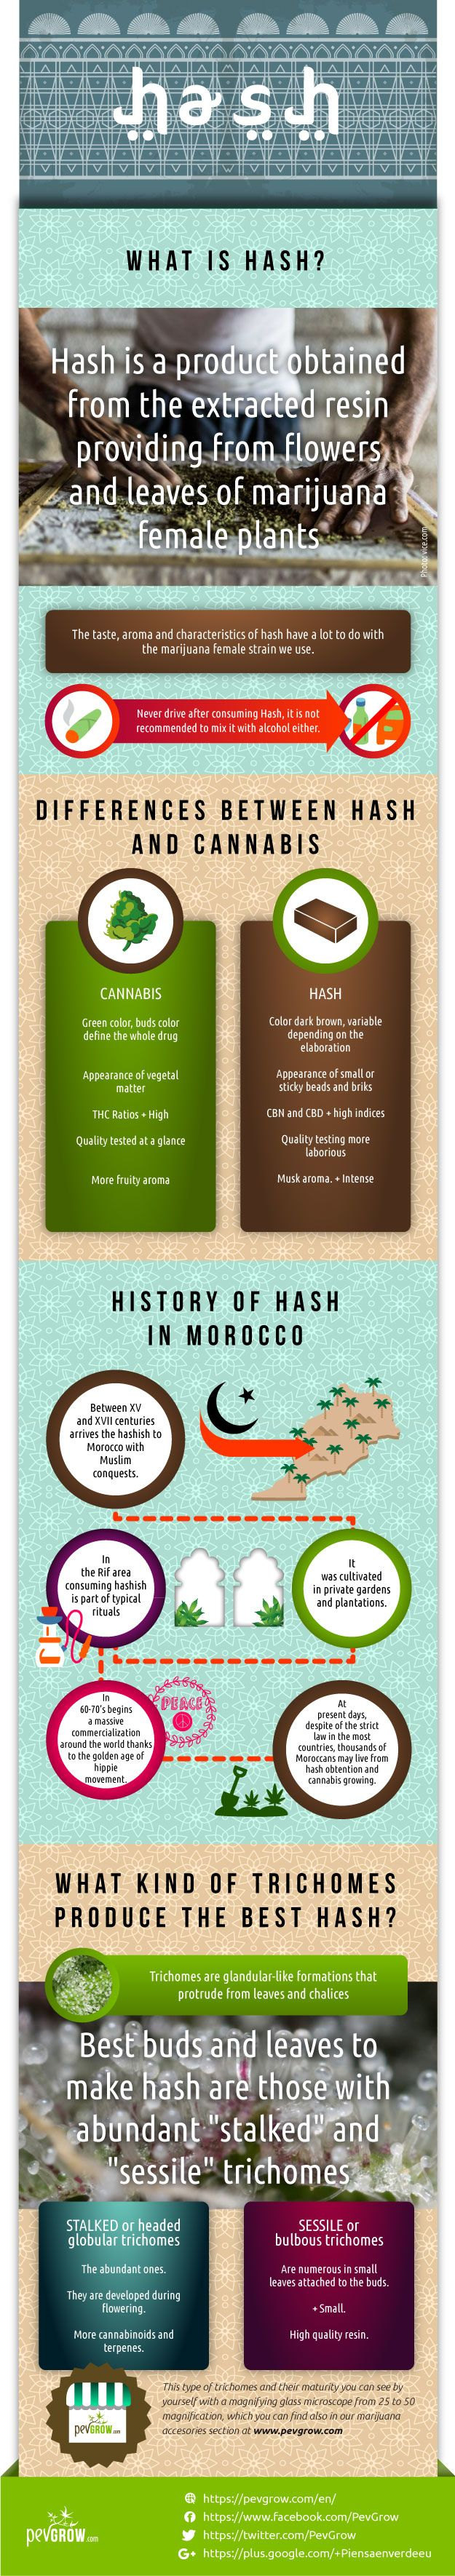 Infographic about hashish